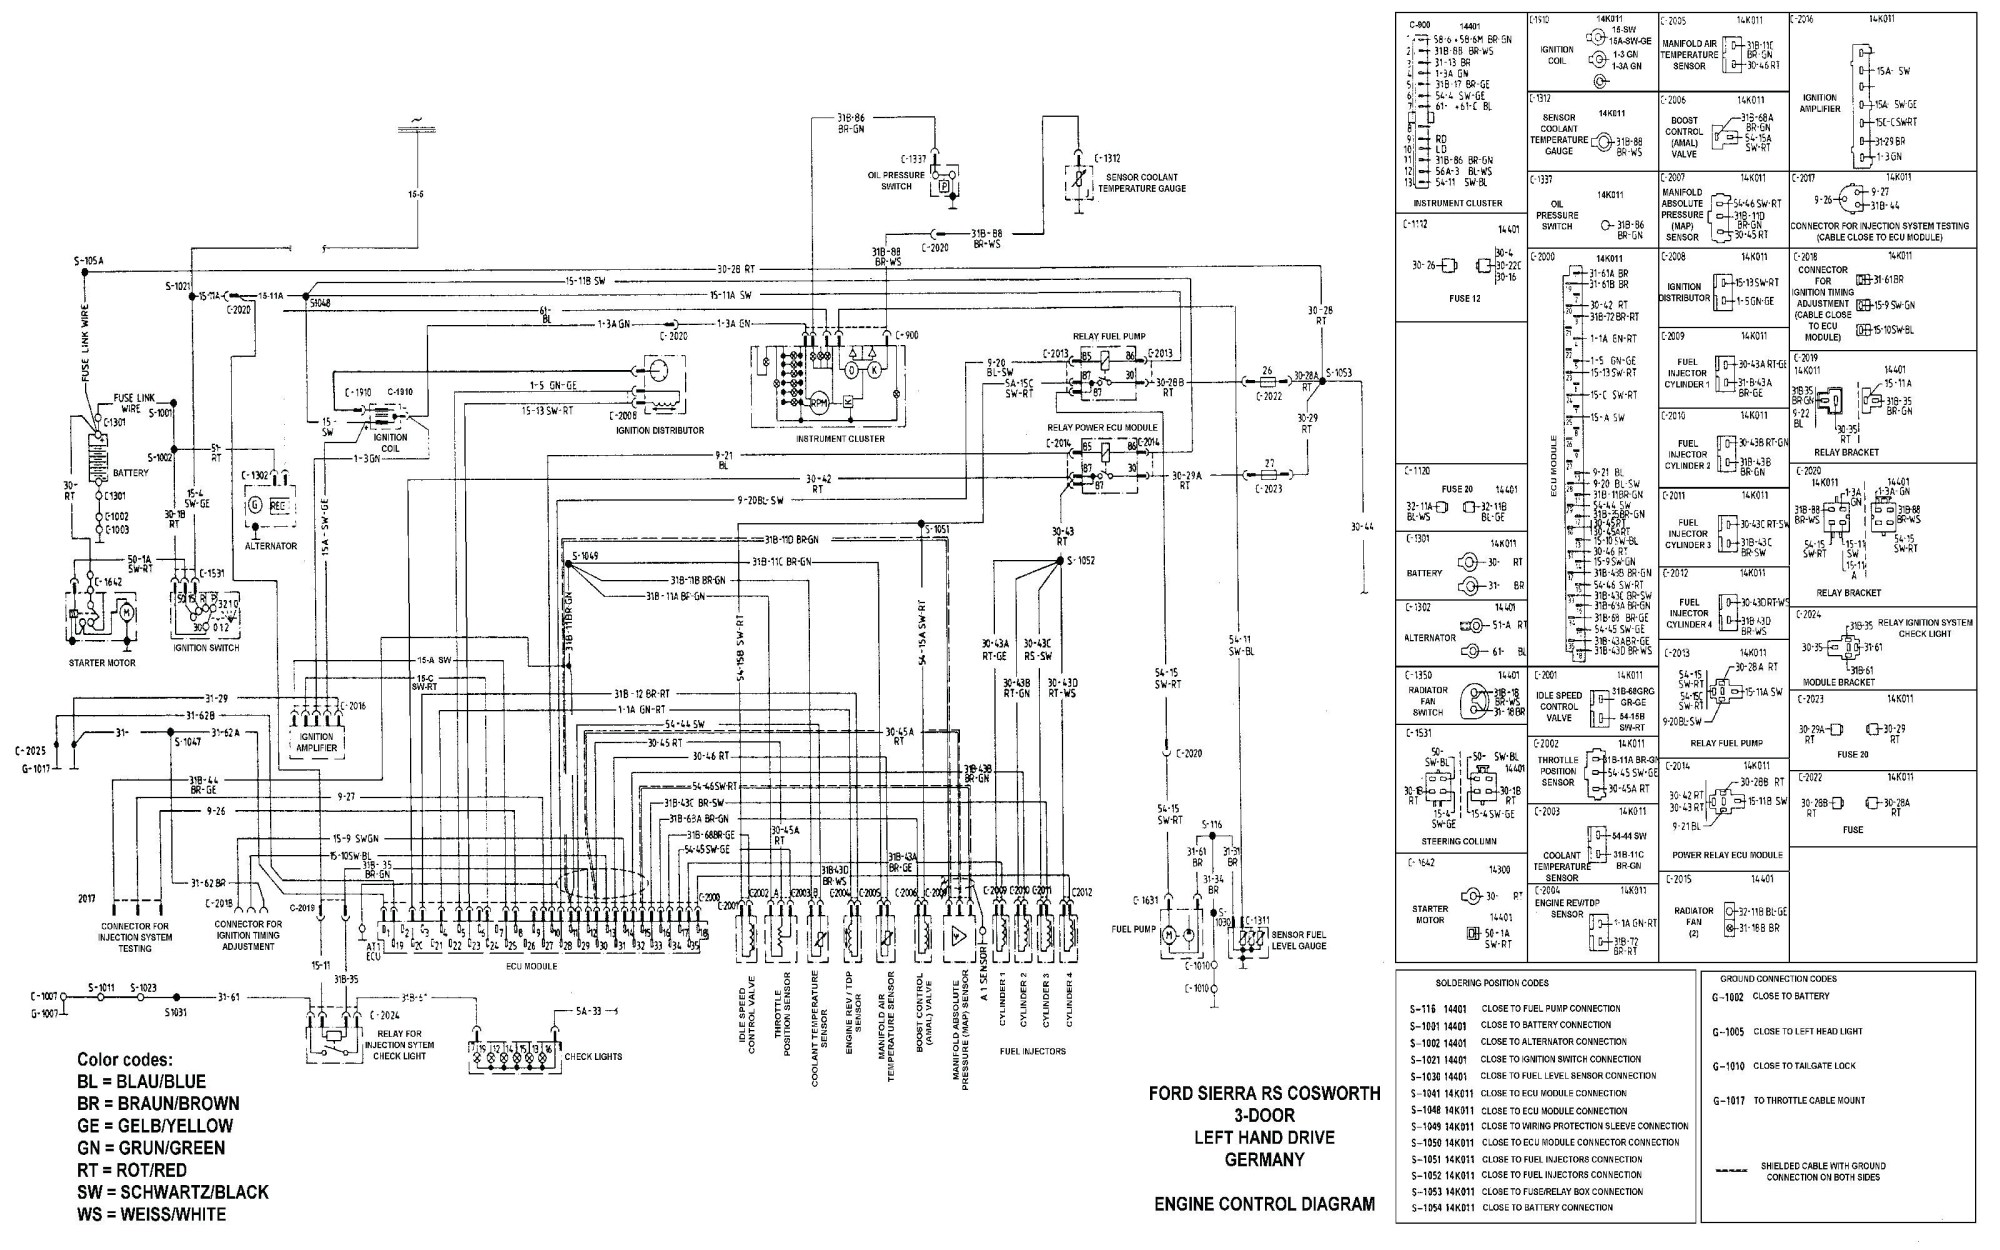 hight resolution of 2010 ford escape engine diagram 2009 ford fusion engine diagram wiring diagrams data base of 2010